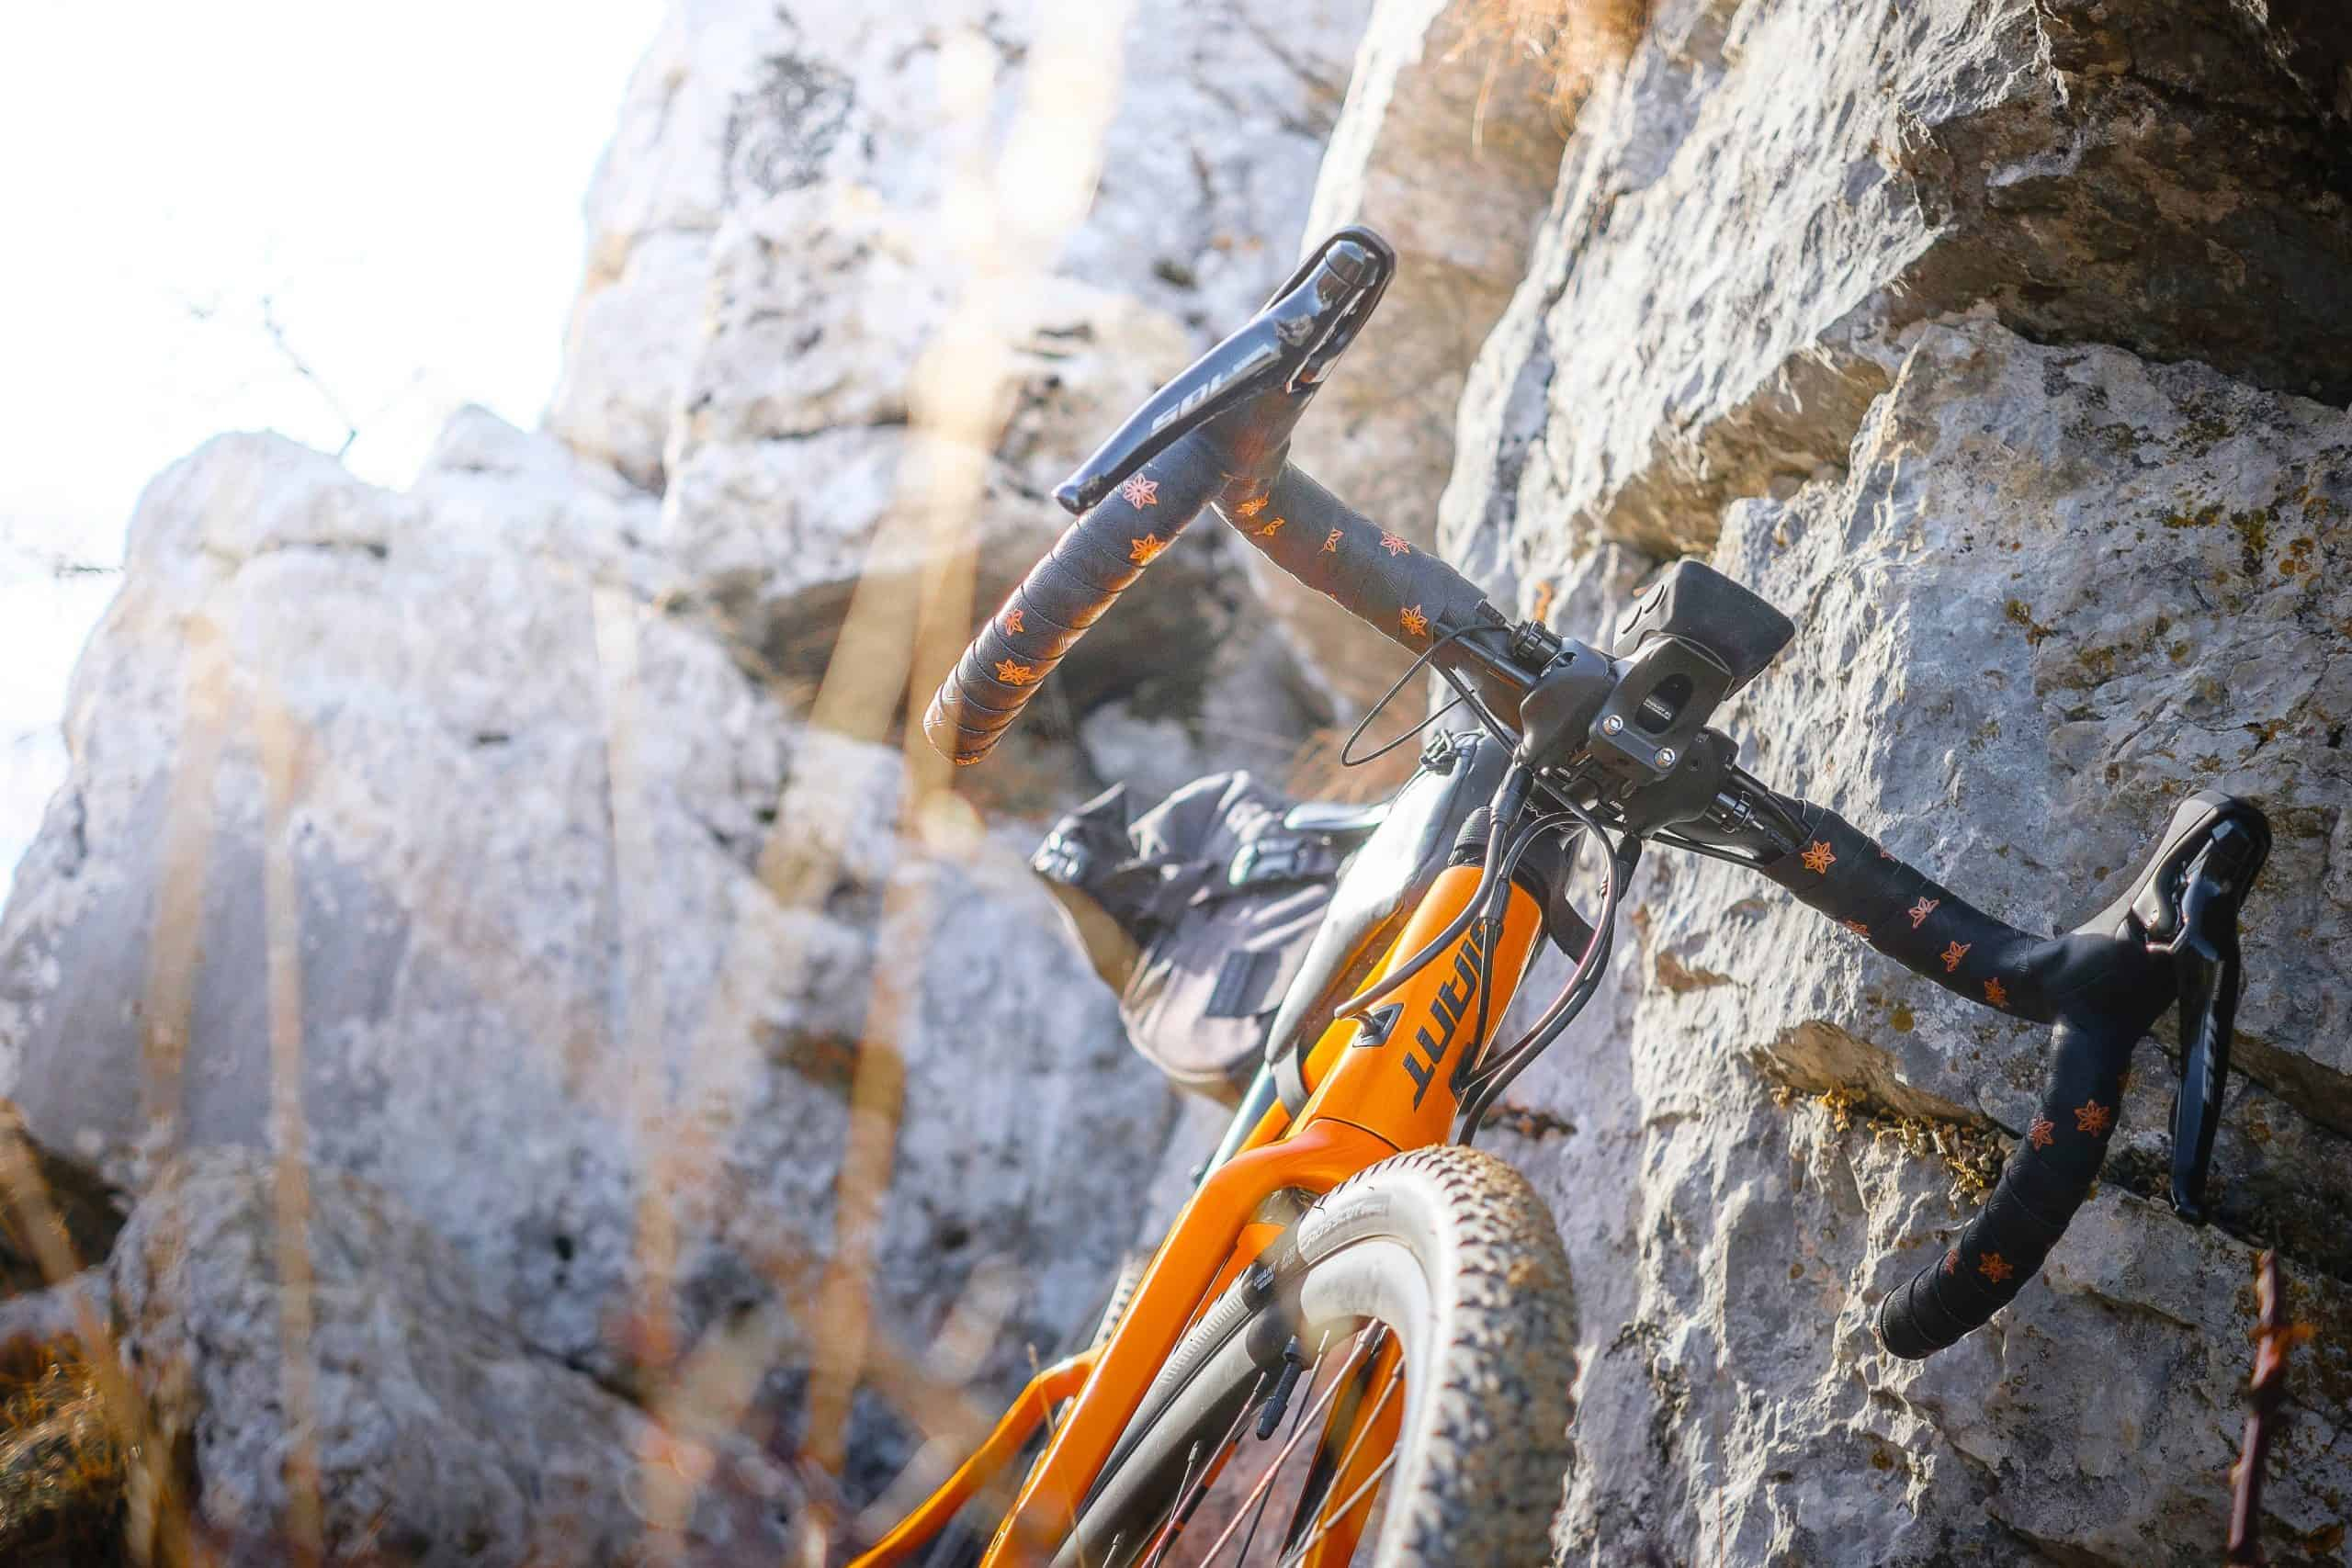 gravel road bikes integrate the benefits of both cyclocross and touring road bikes